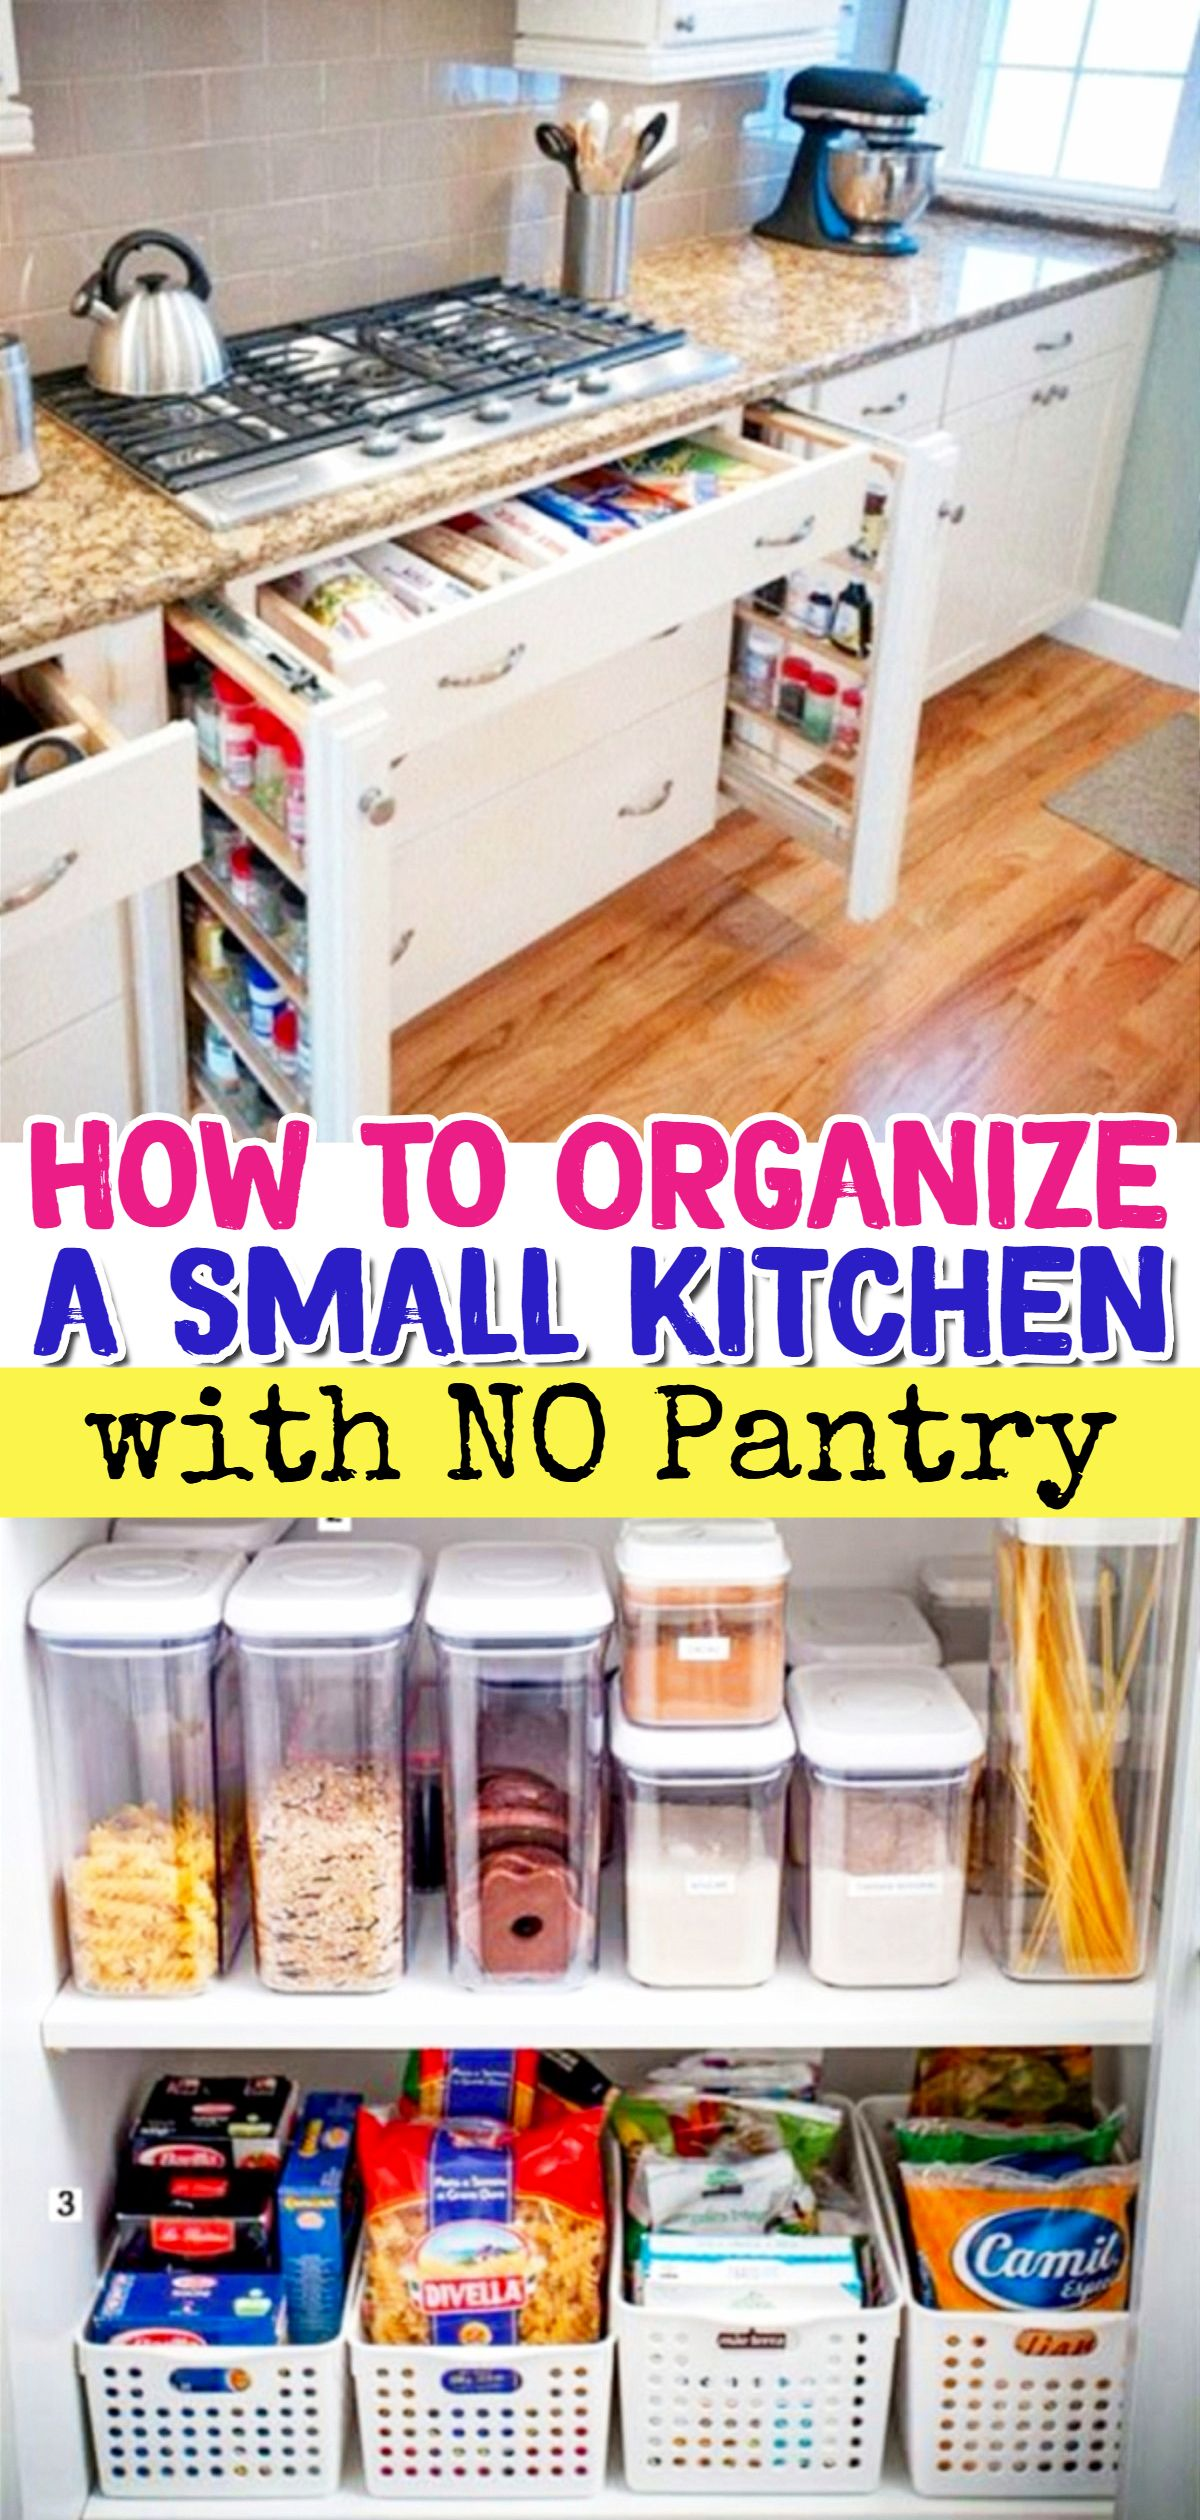 No Pantry? How To Organize a Small Kitchen WITHOUT a Pantry ...